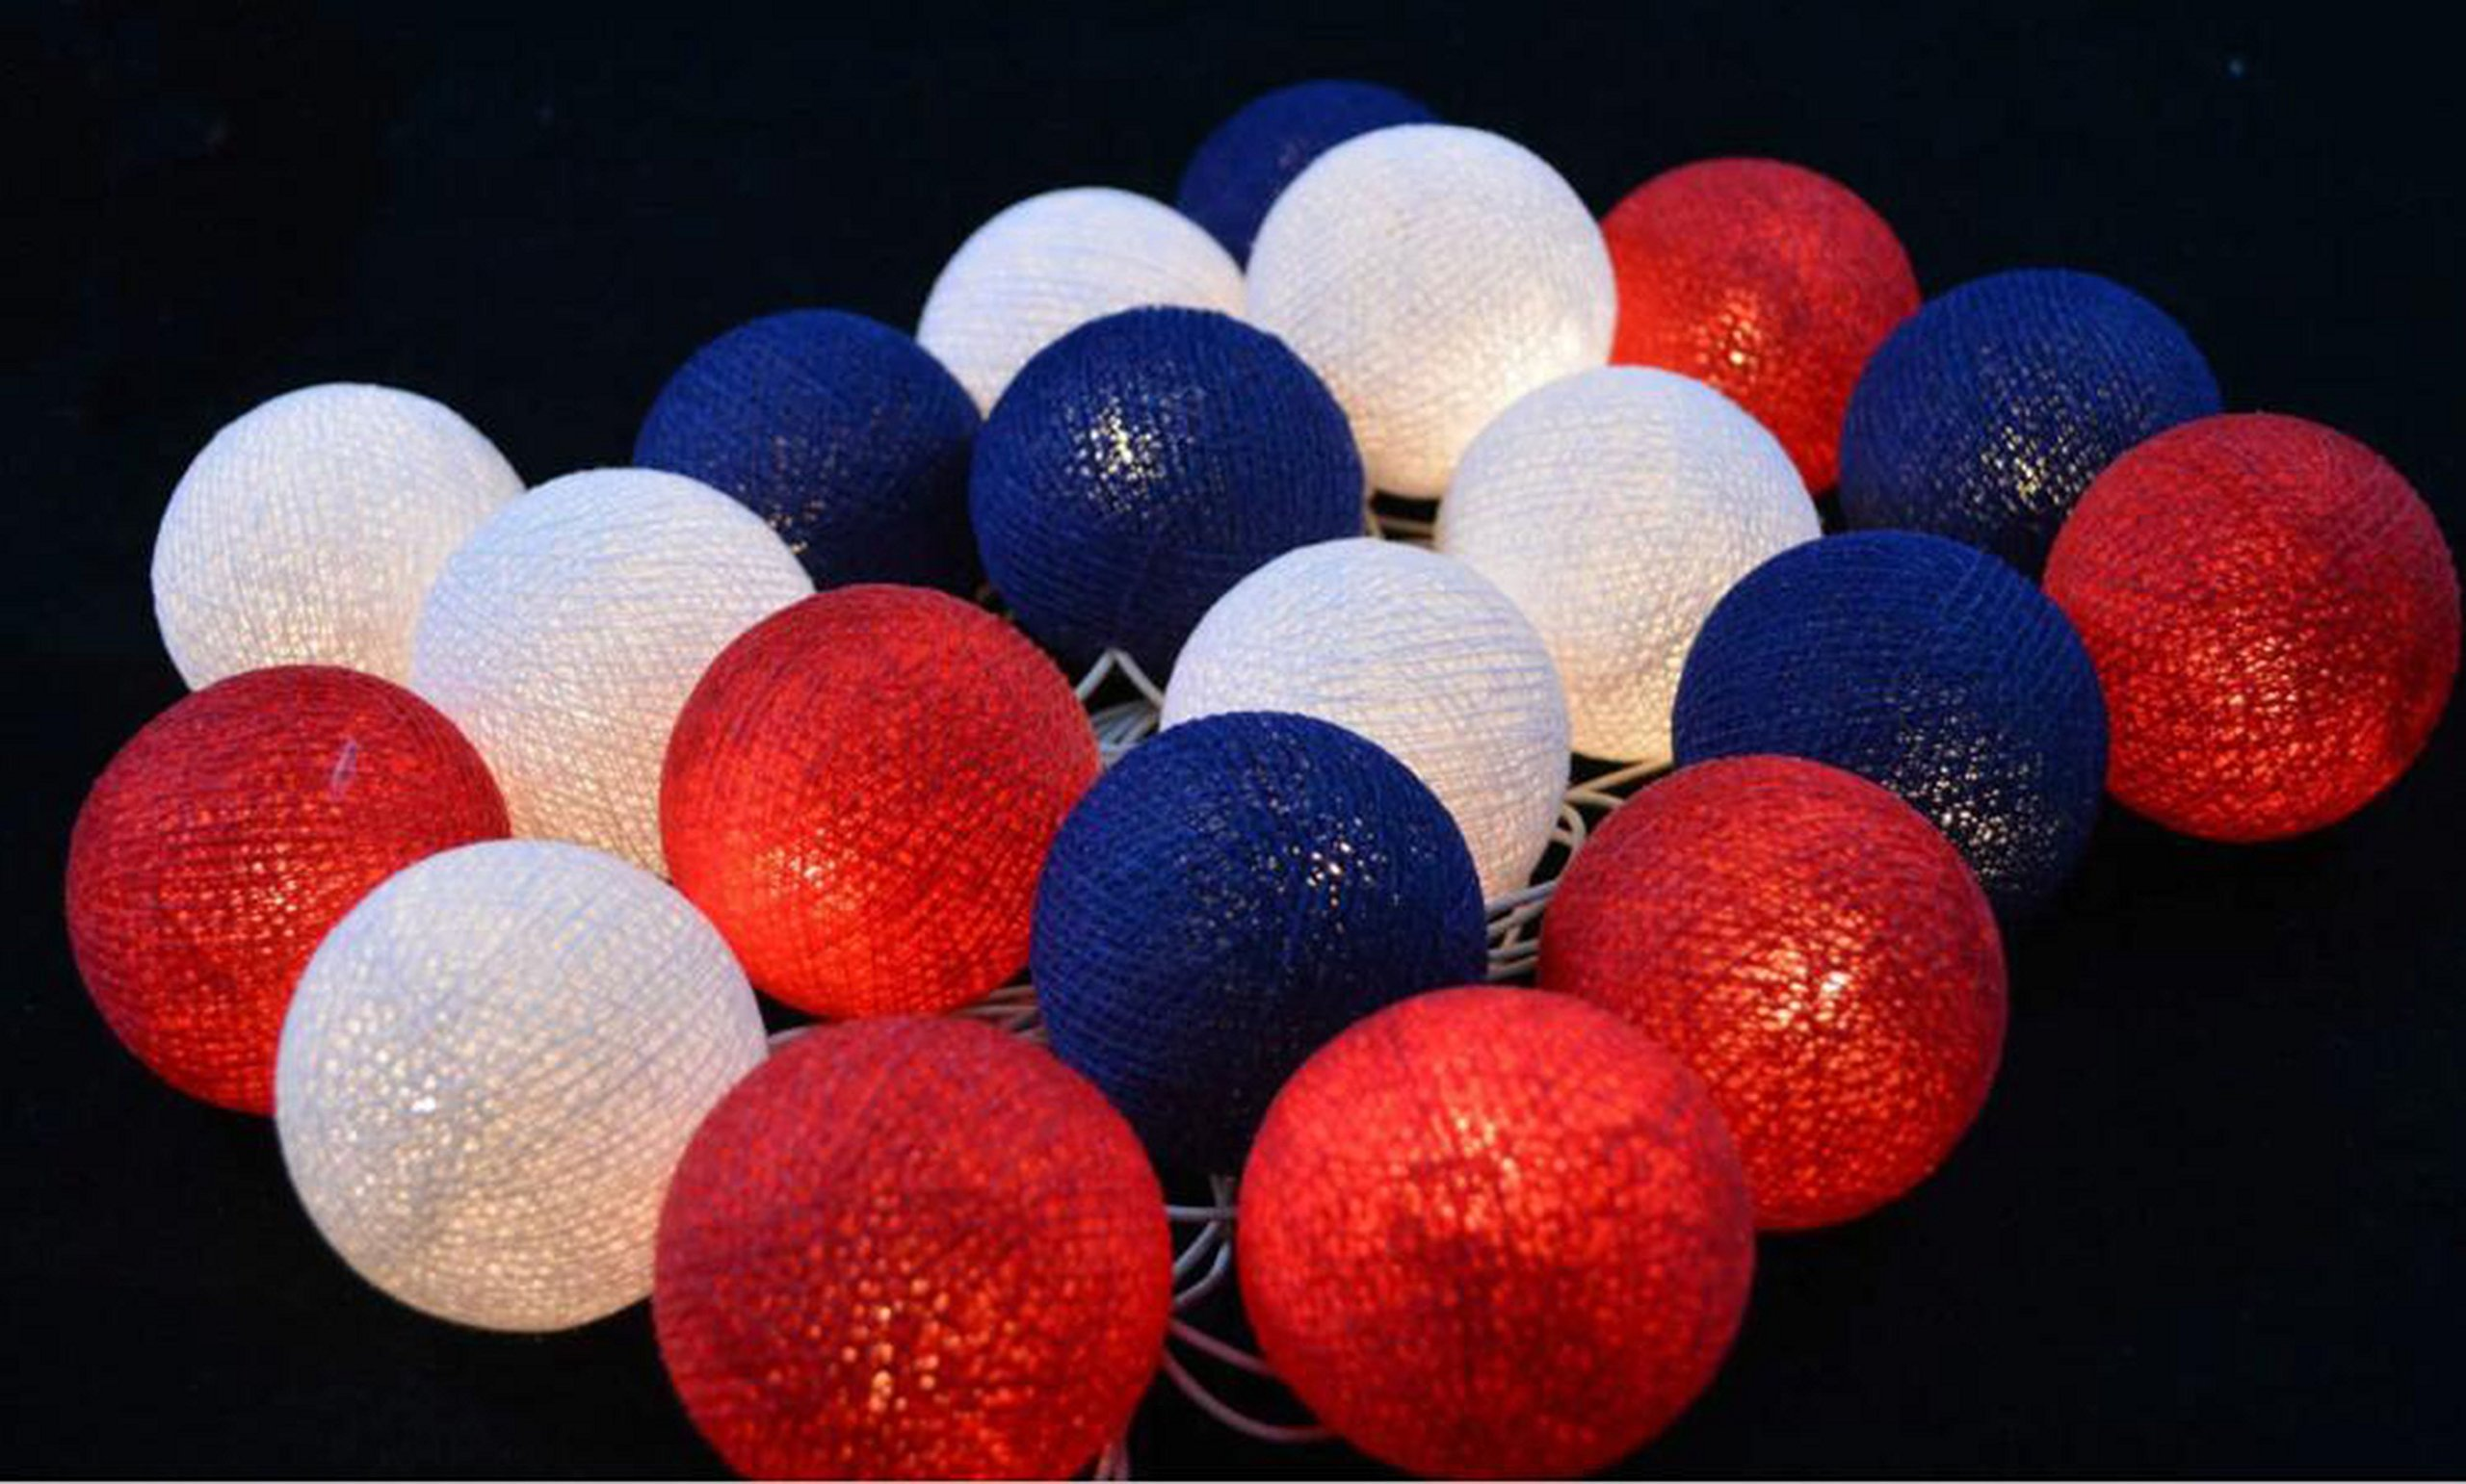 2.5m 20 LED Red White Blue Cotton Balls String Lights Battery Operated LED Garland Outdoor Garden Wedding Party Christmas Decorations Kids Room Decoration Lights July 4th Patriotic Party Decor